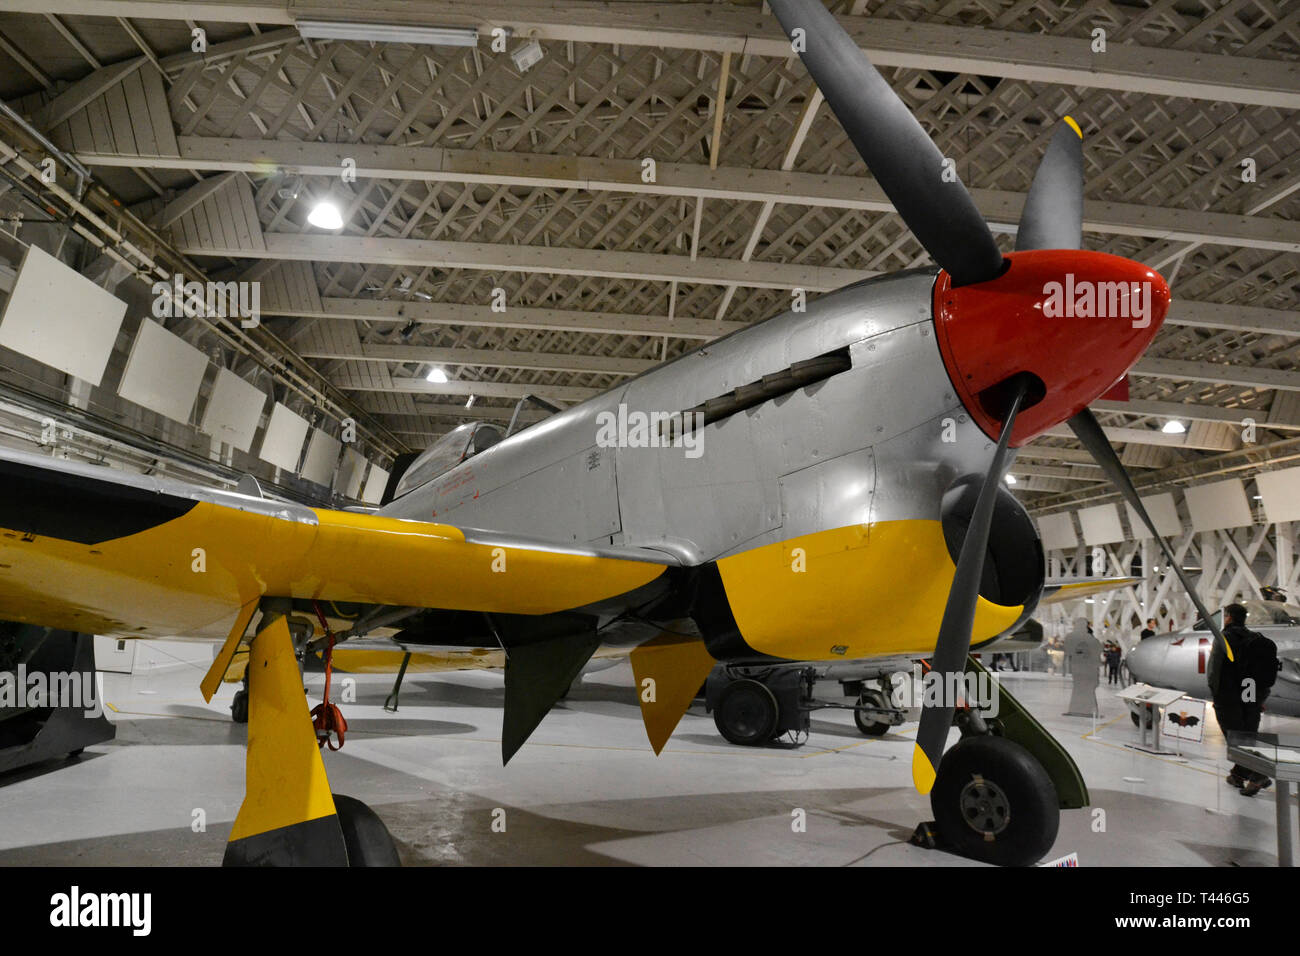 Hawker Tempest at the RAF Museum, London, UK Stock Photo